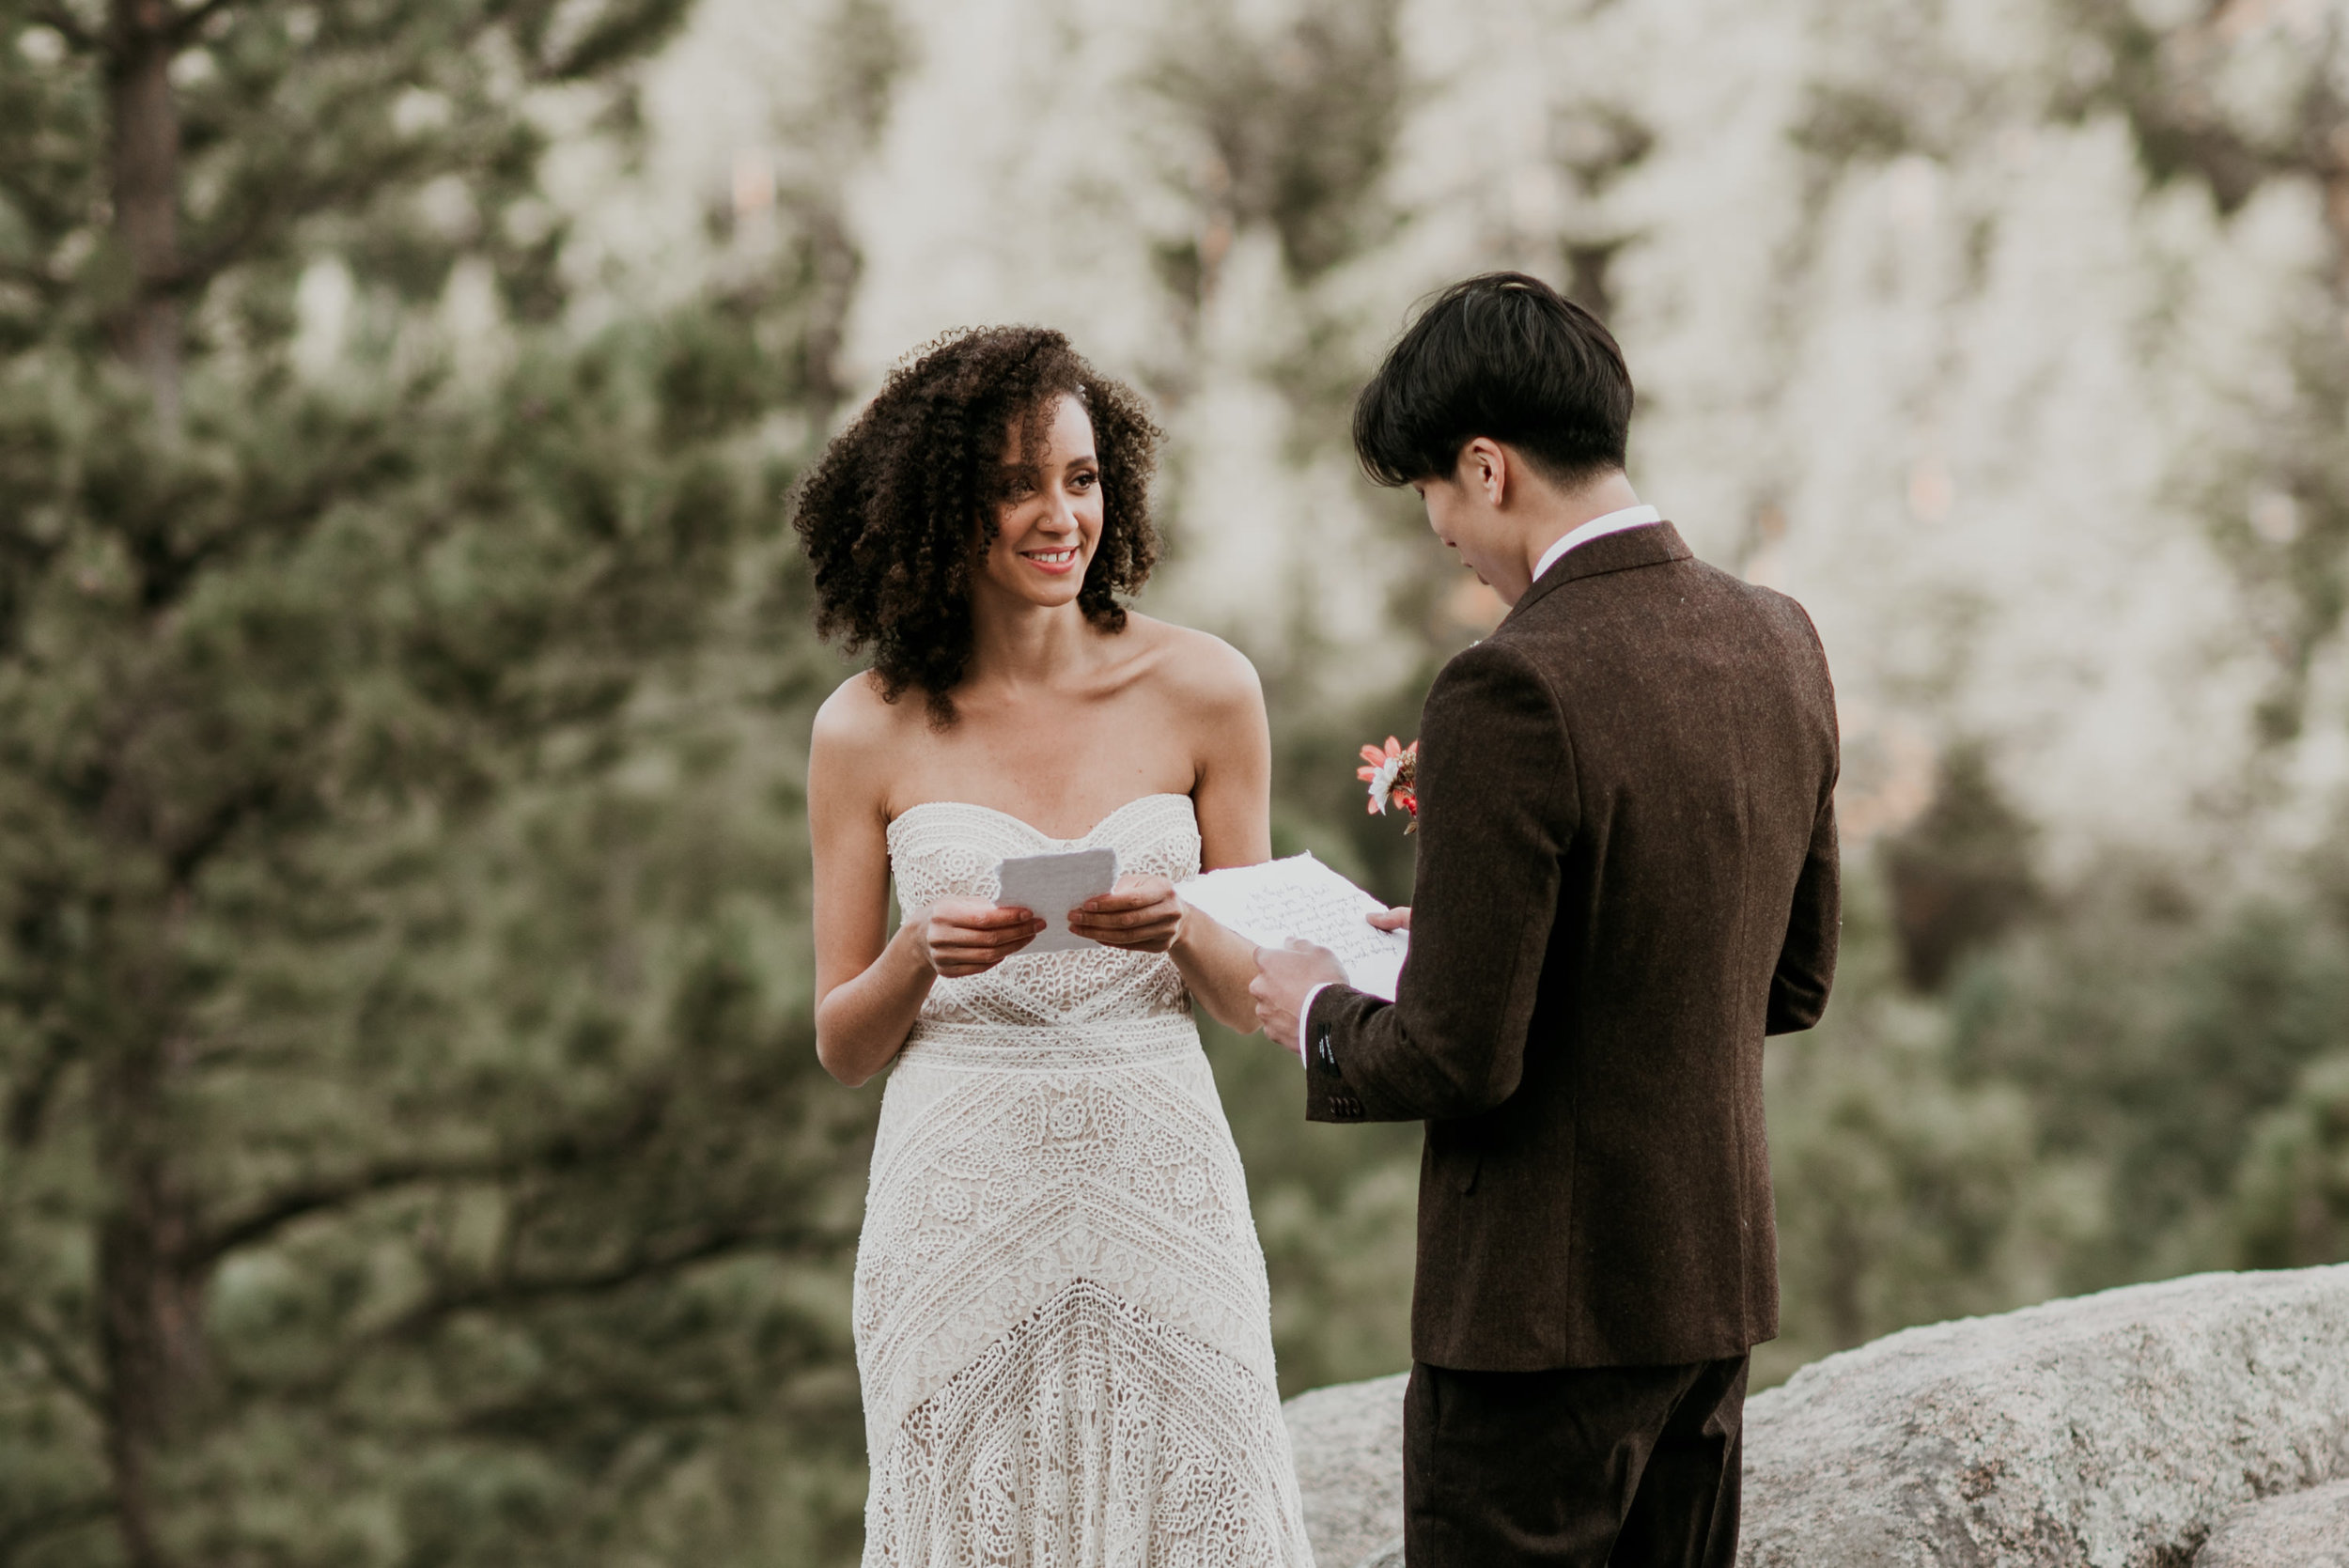 Reading vows on a ledge, the bride is wearing rue de seine and the groom is in a dark brown wool tweed suit.